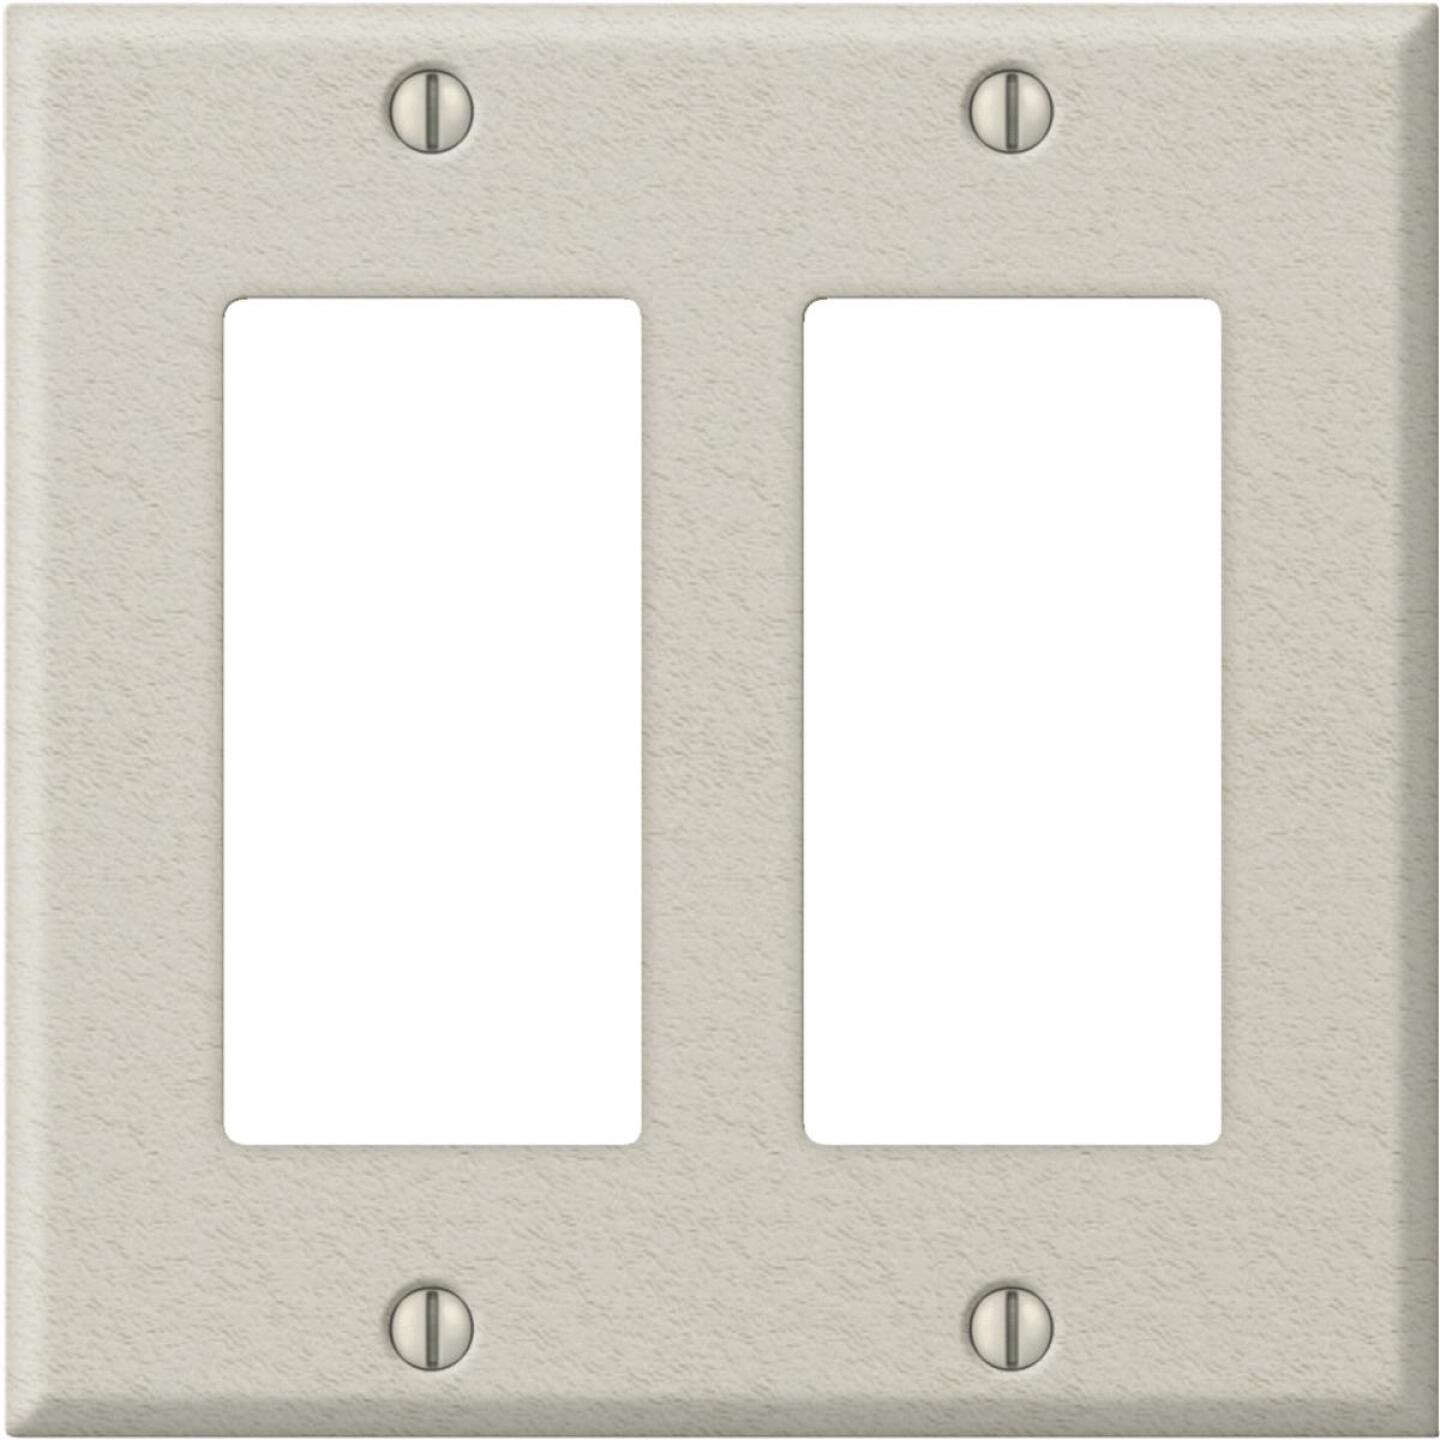 Amerelle PRO 2-Gang Stamped Steel Rocker Decorator Wall Plate, Light Almond Wrinkle Image 1